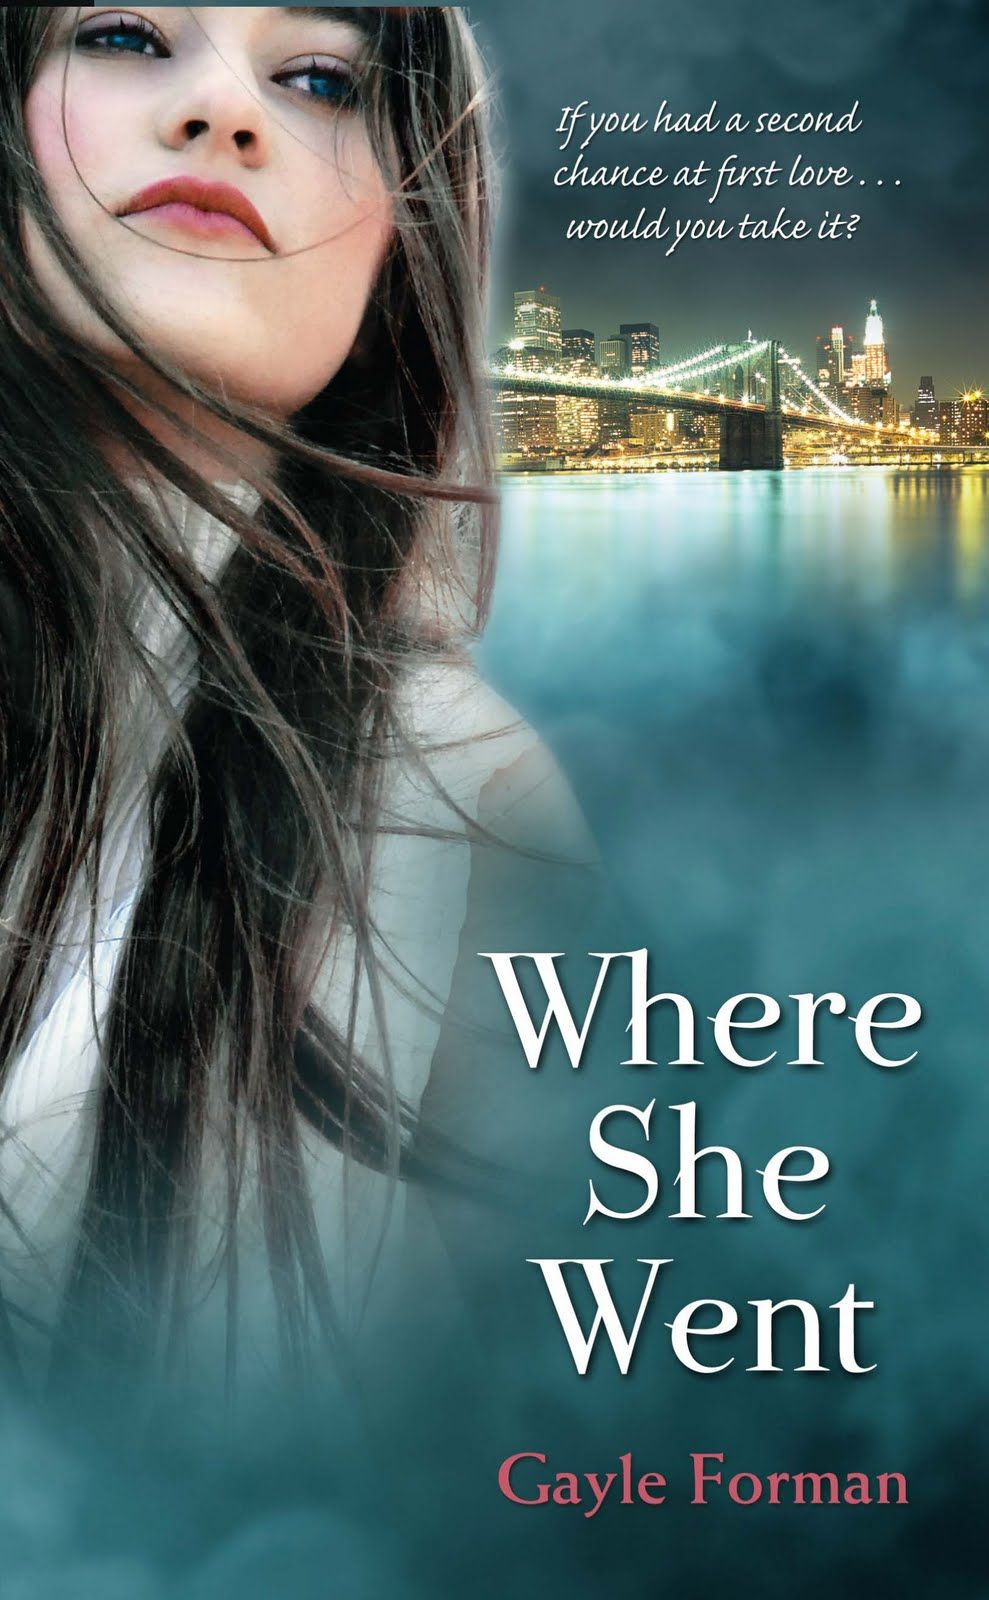 Where She Went Gayle Forman Ebook